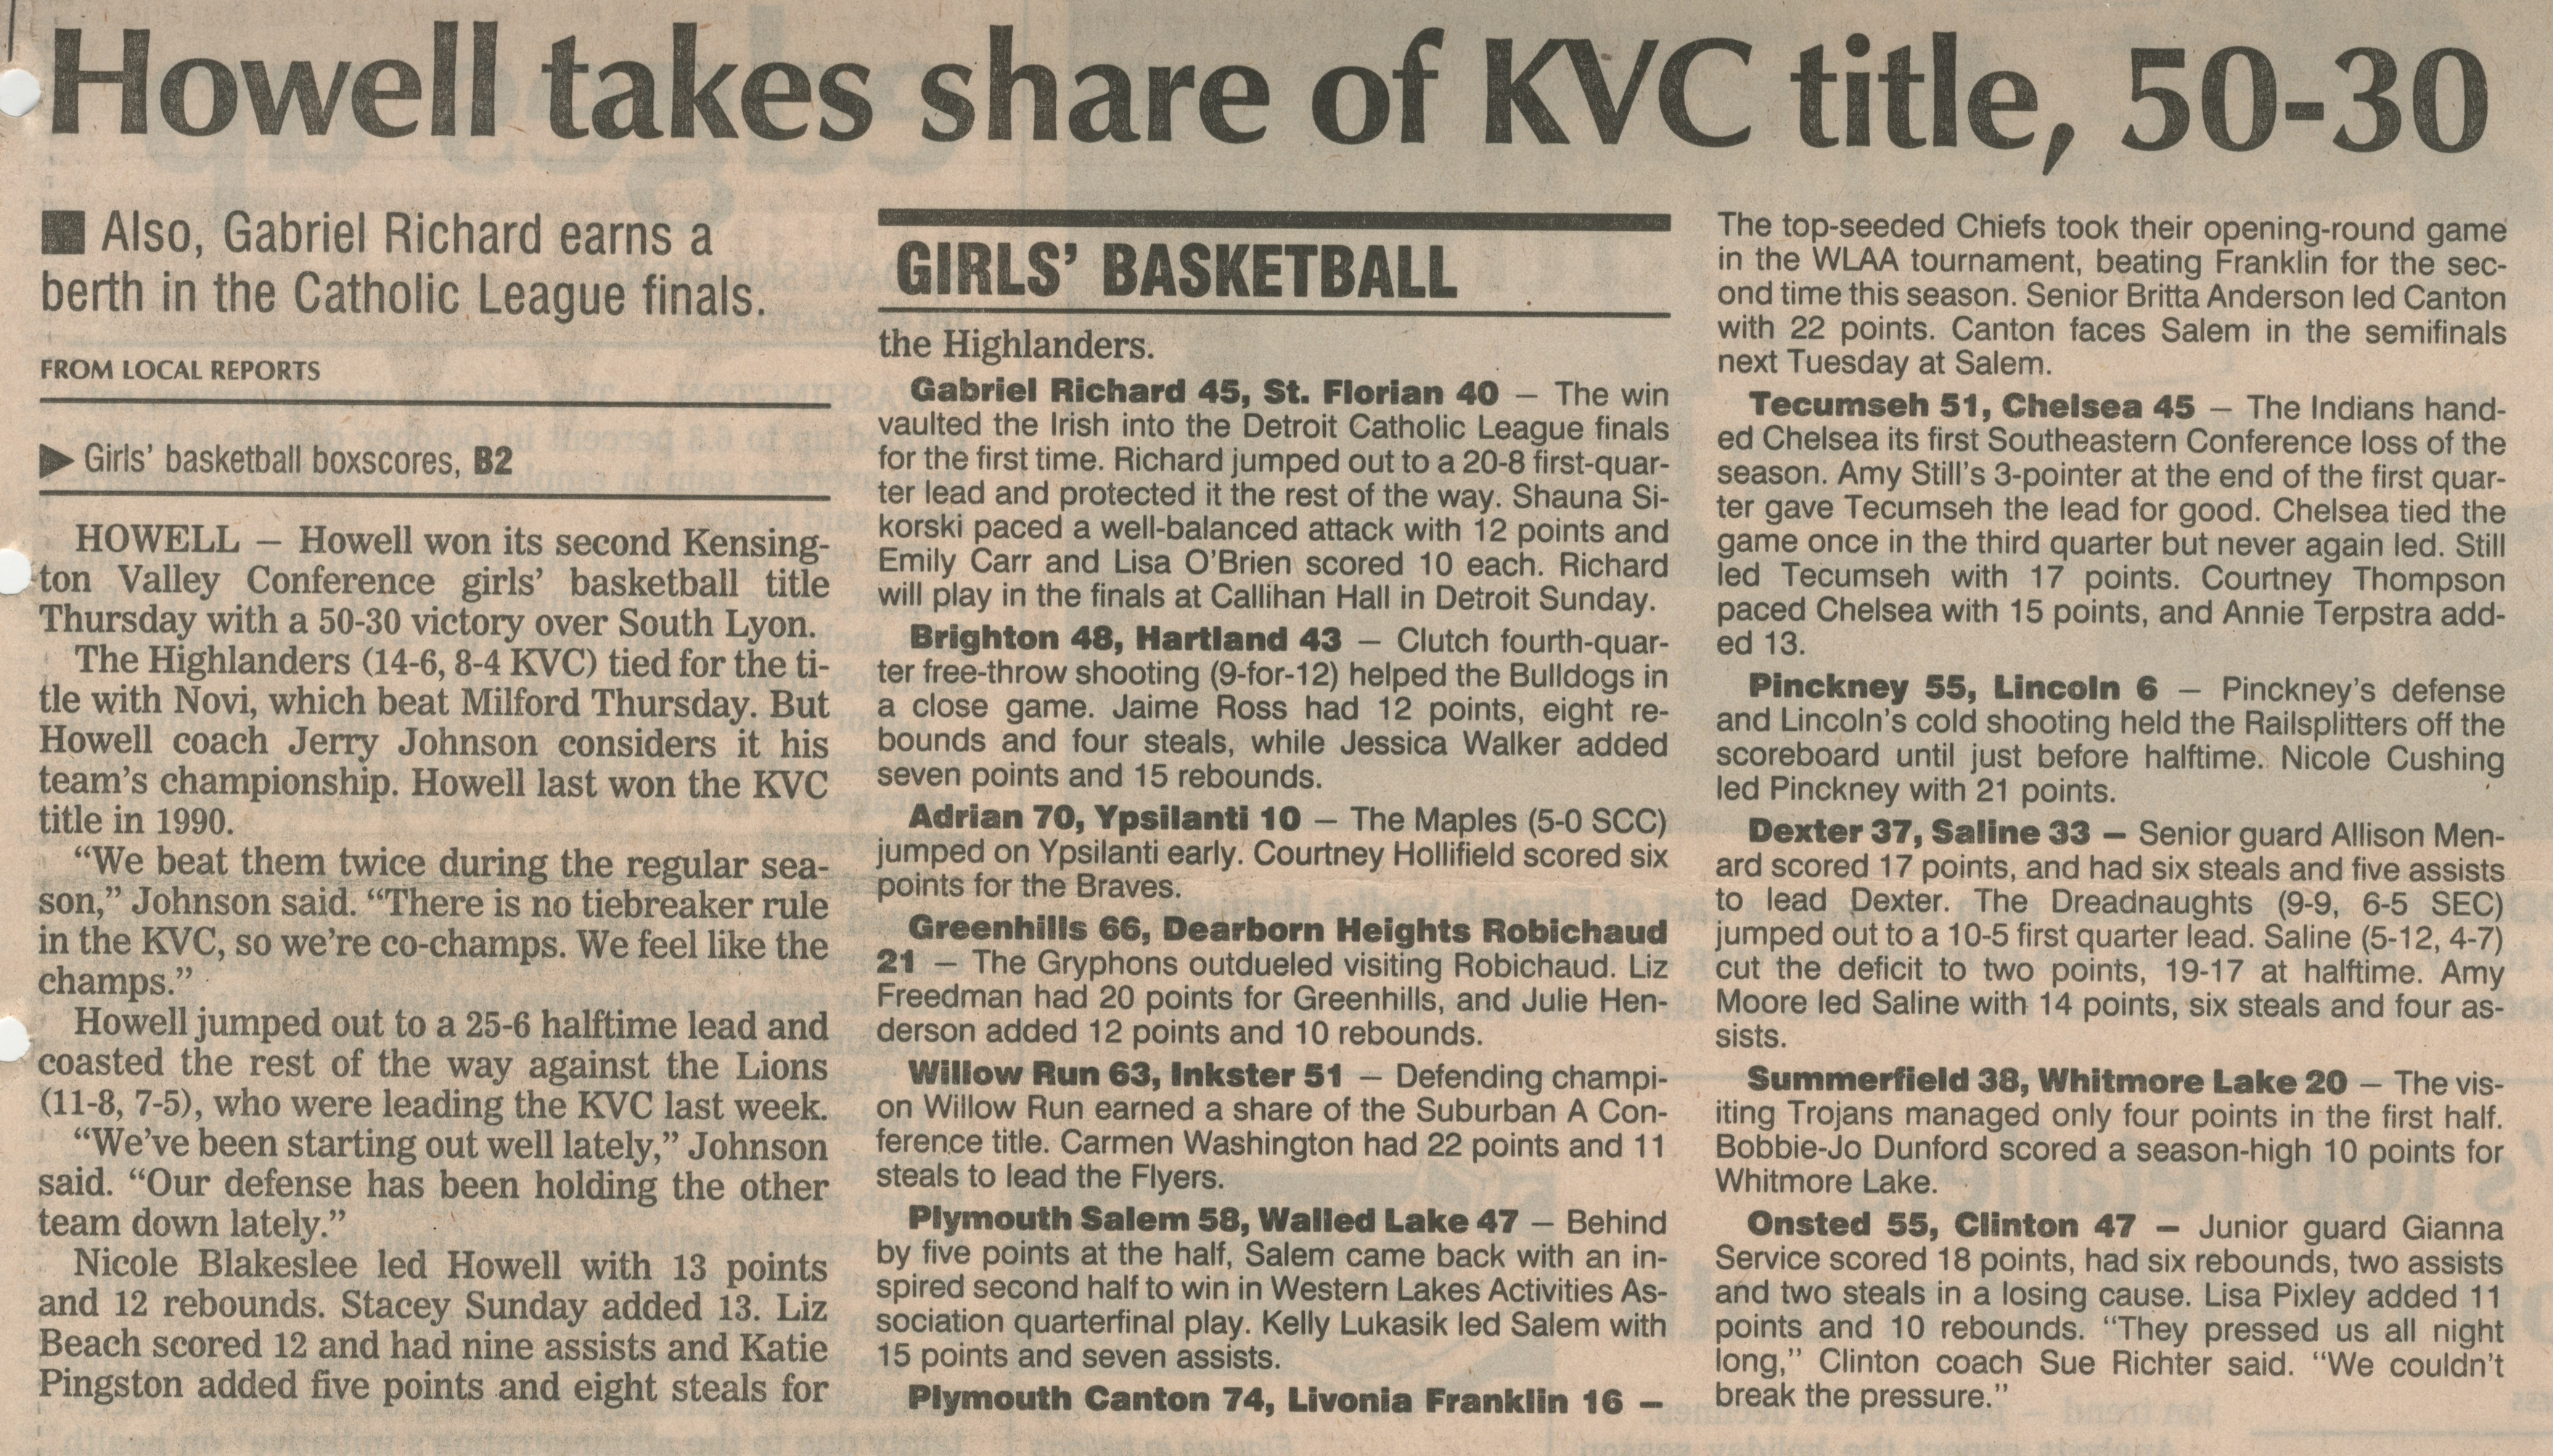 Howell Takes Share of KVC Title, 50 - 30 - Also, Gabriel Richard Earns A Berth In The Catholic League Finals image